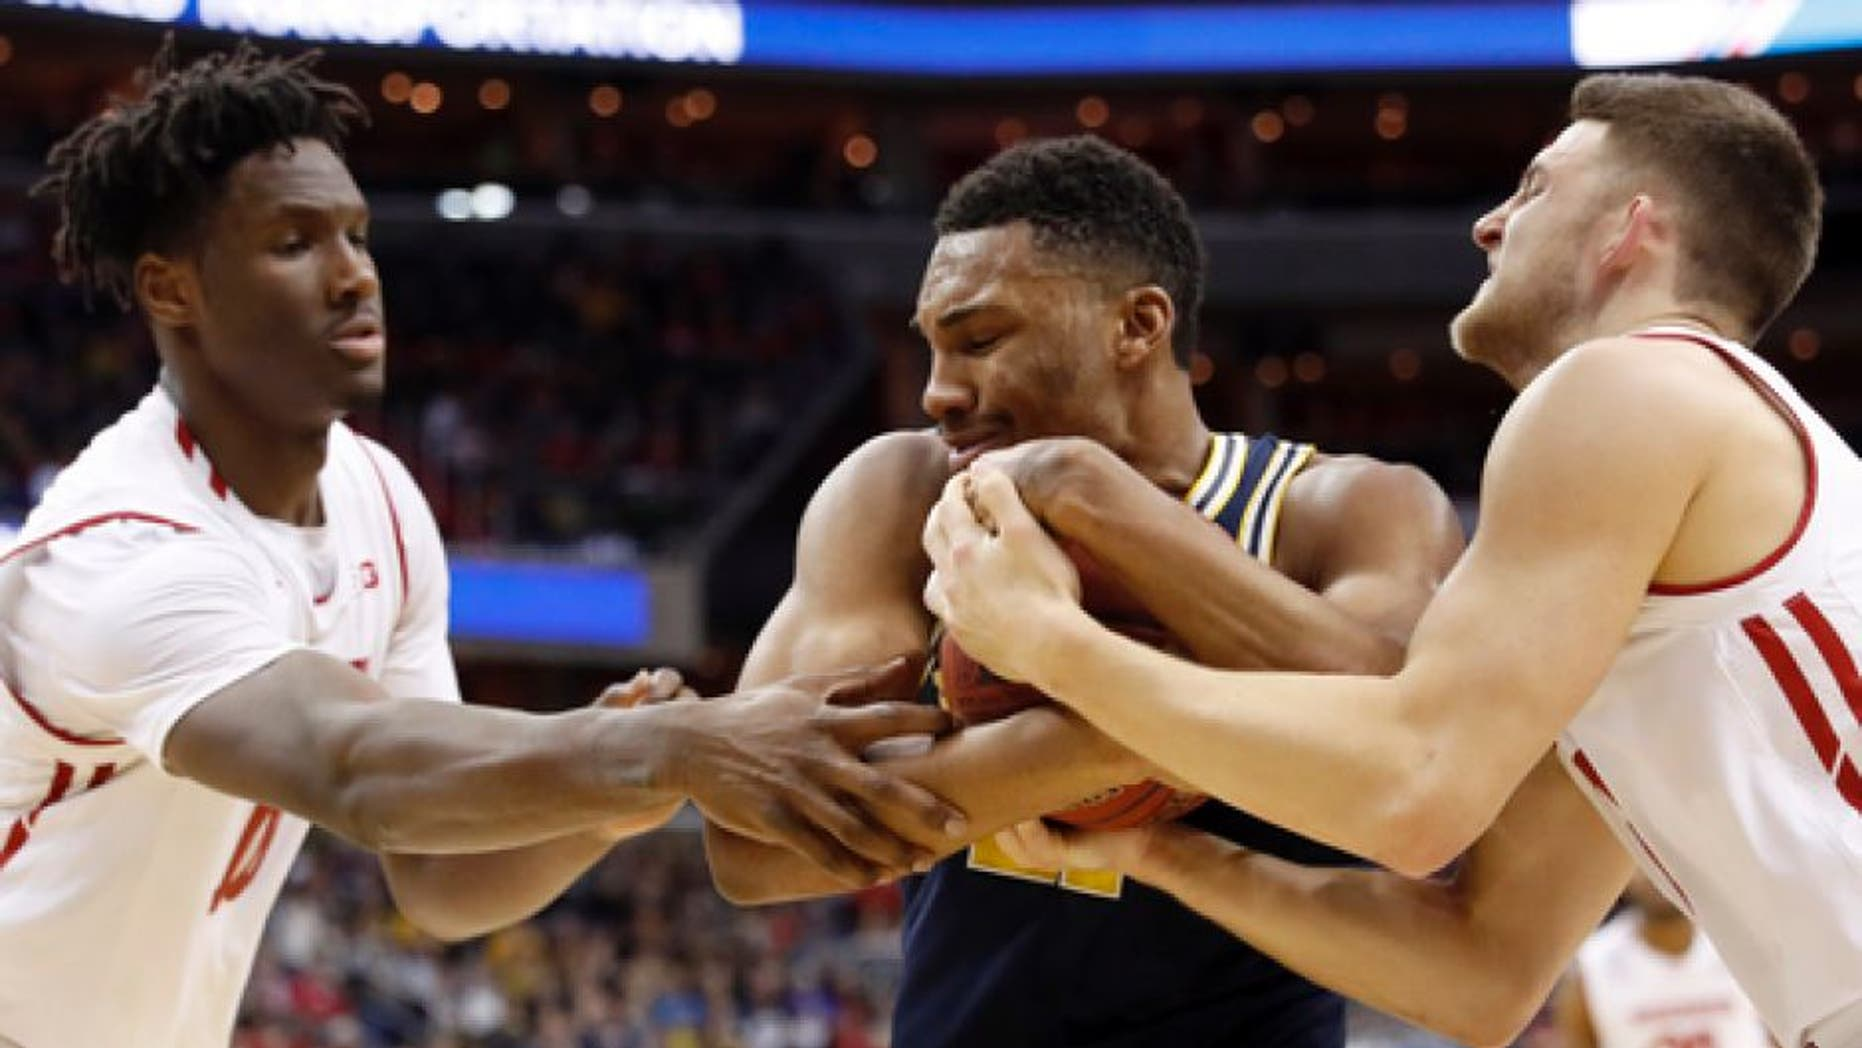 Wisconsin forward Nigel Hayes, left, Michigan guard Zak Irvin and Wisconsin guard Zak Showalter grab for the ball during the second half of the Big Ten NCAA college basketball championship game, Sunday, March 12, 2017, in Washington. (AP Photo/Alex Brandon)